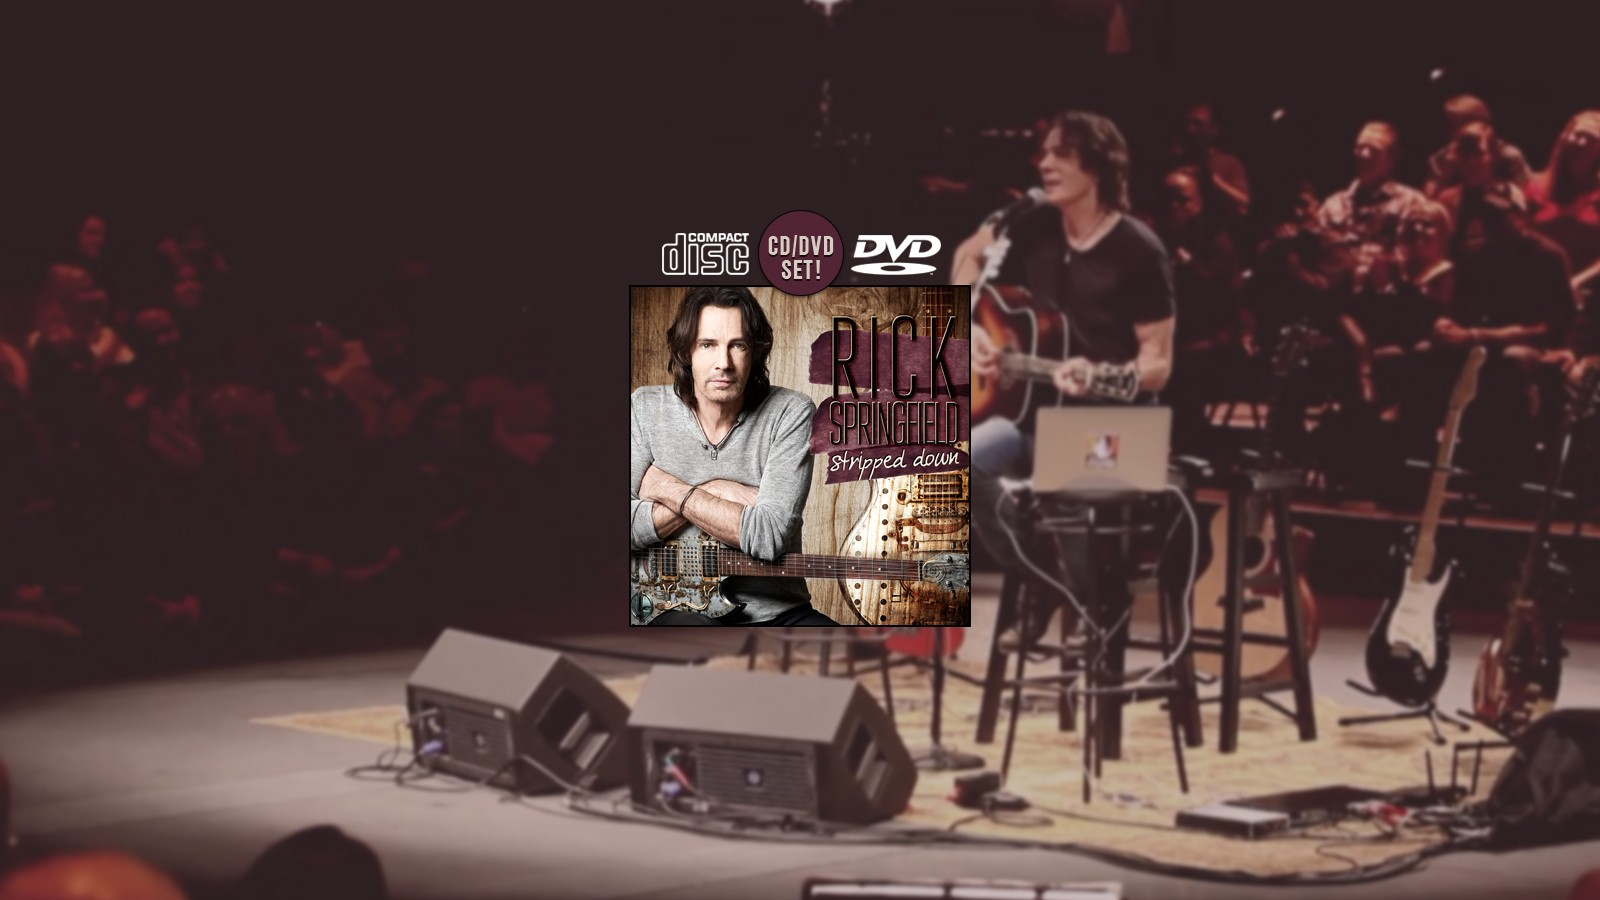 Rick Springfield - Stripped Down - CD/DVD